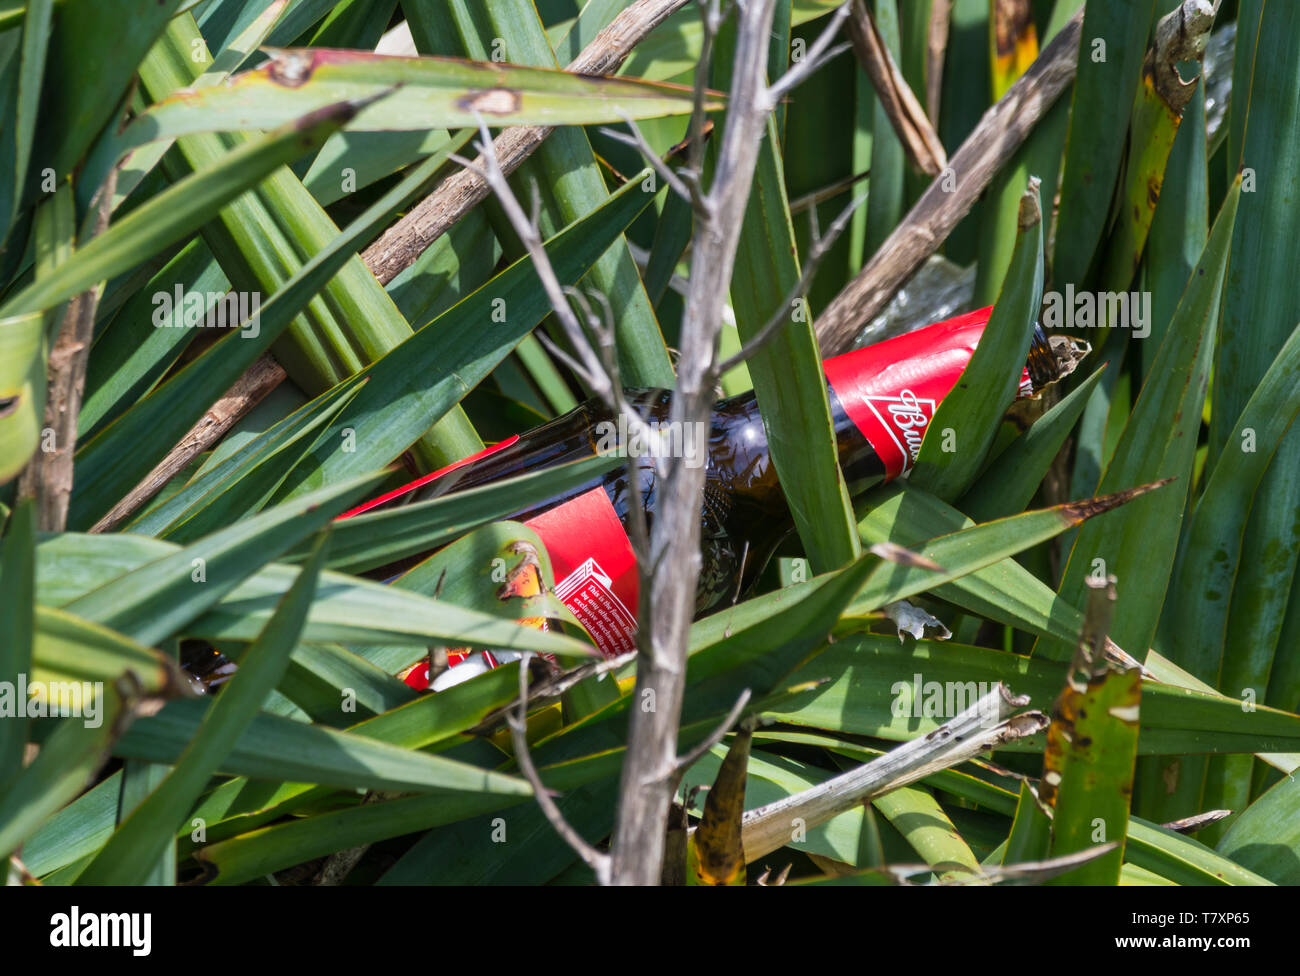 Discarded glass bottle laying in overgrowth on the ground after being thrown away, in the UK. - Stock Image